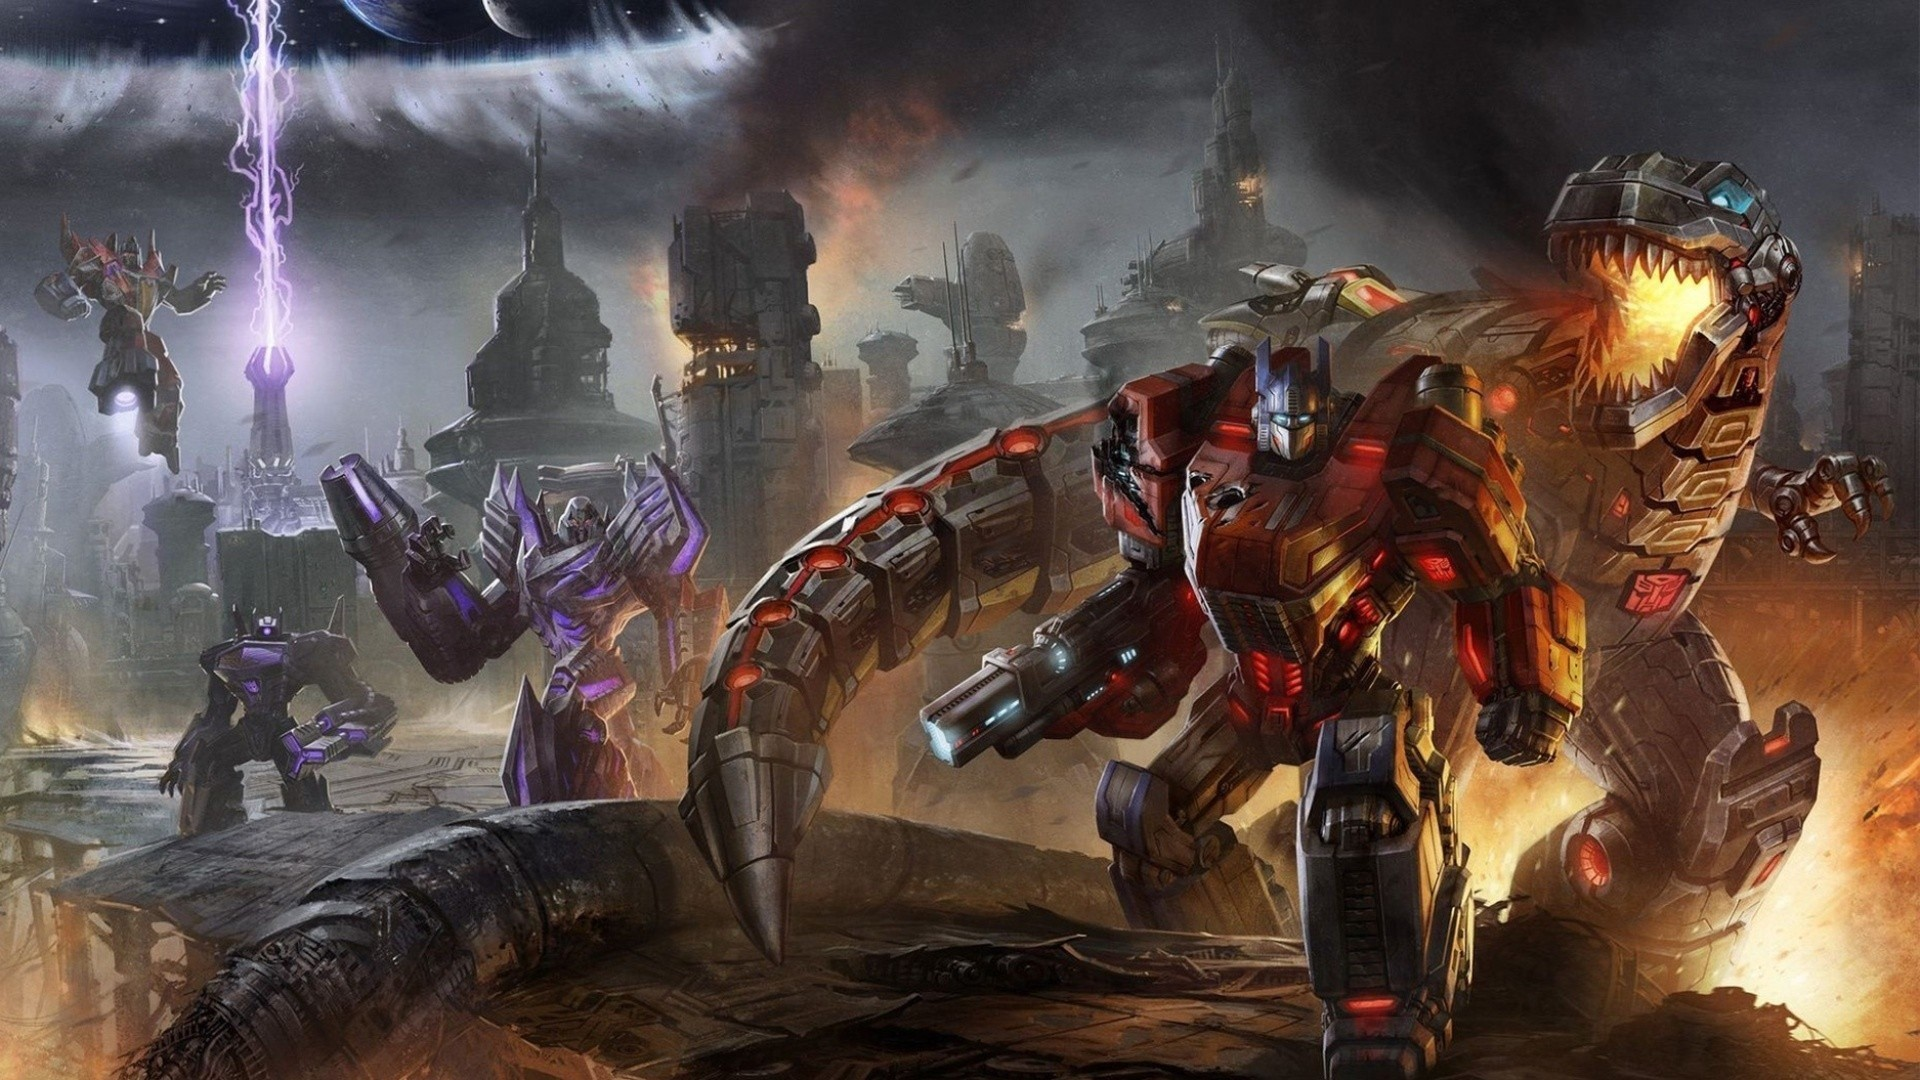 Res: 1920x1080, Transformers Optimus Prime Autobot 1080p HD Wallpaper Background